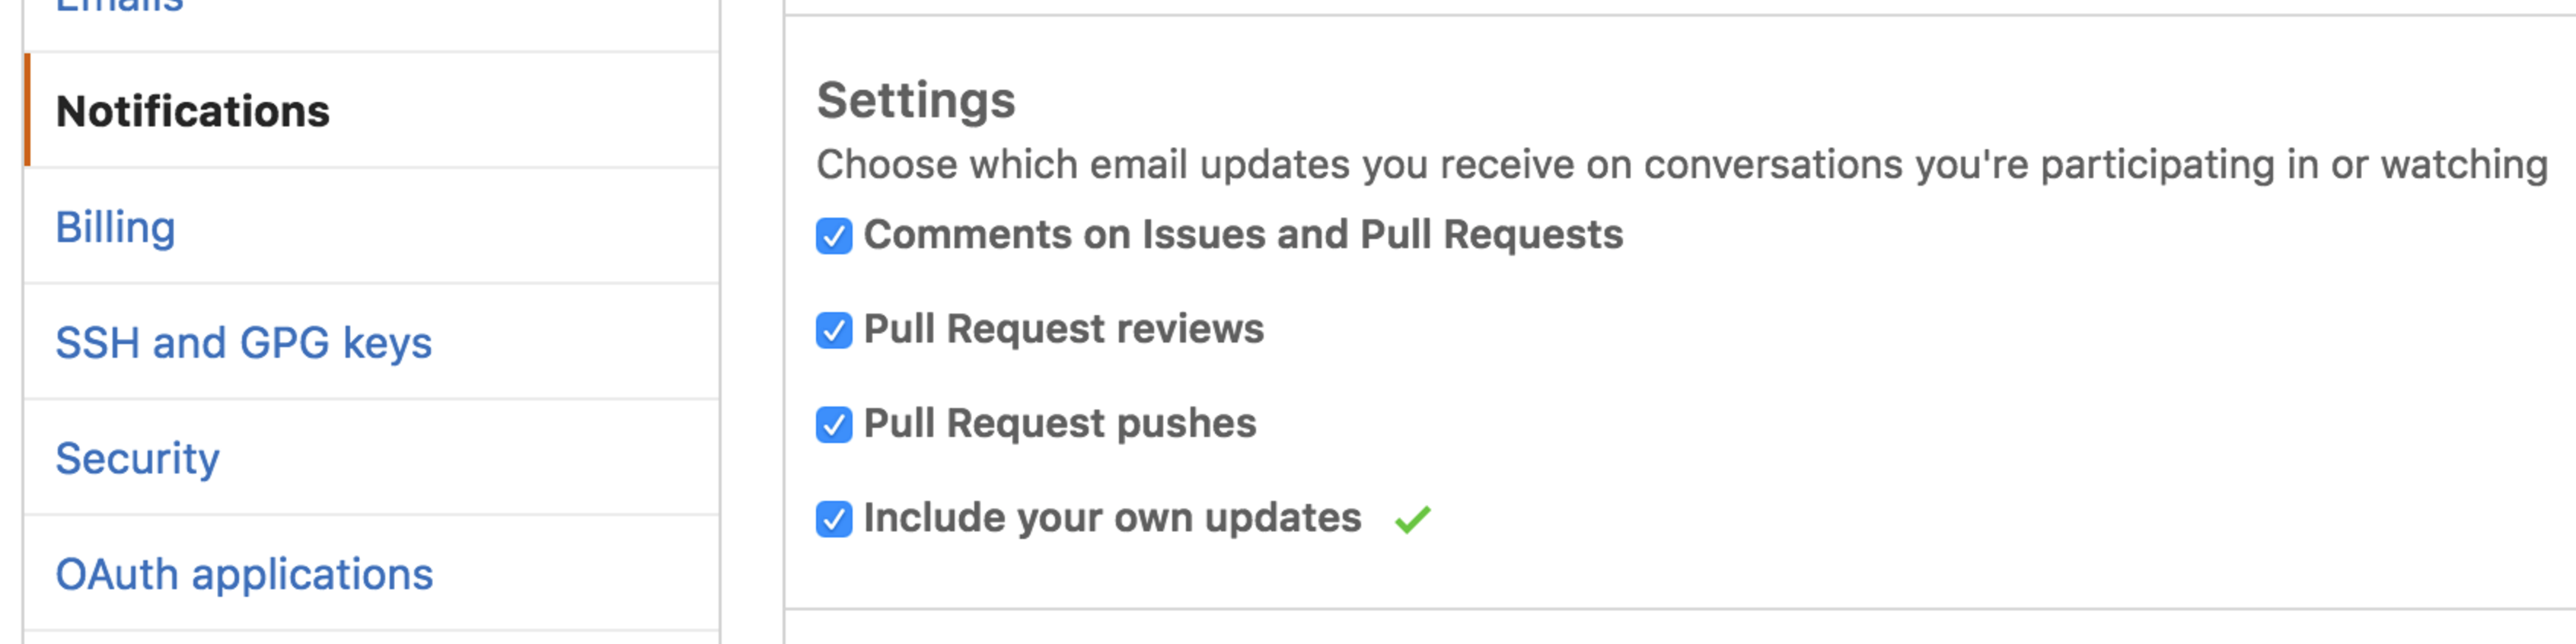 Different options for configuring the email notifications you receive